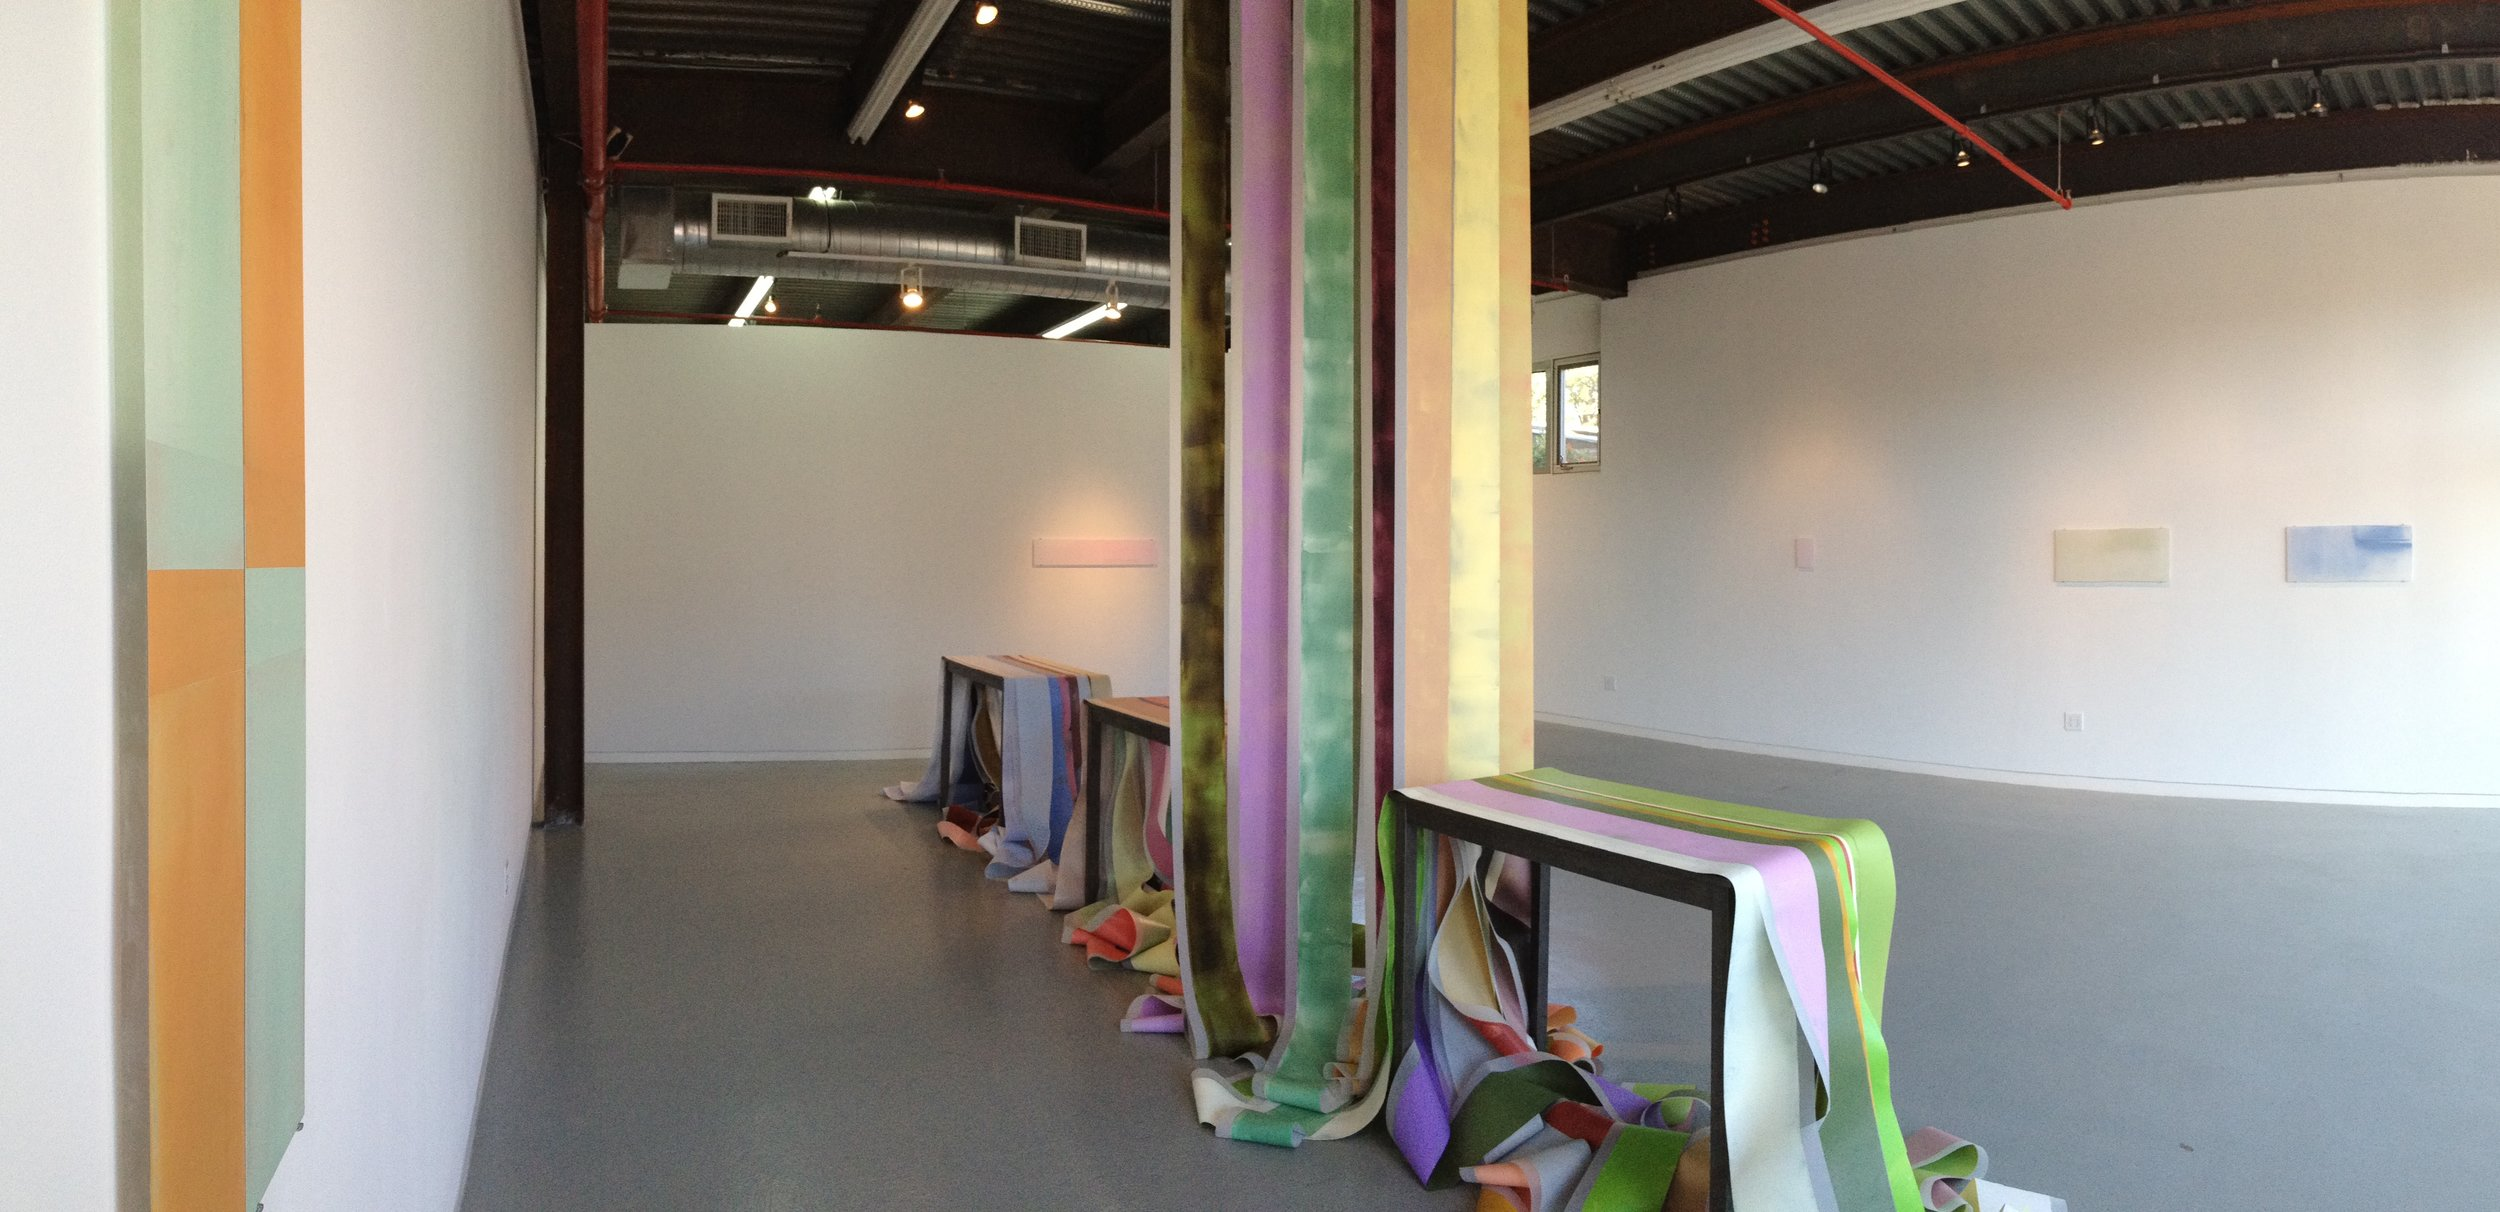 Hue[s]pace at ODETTA gallery